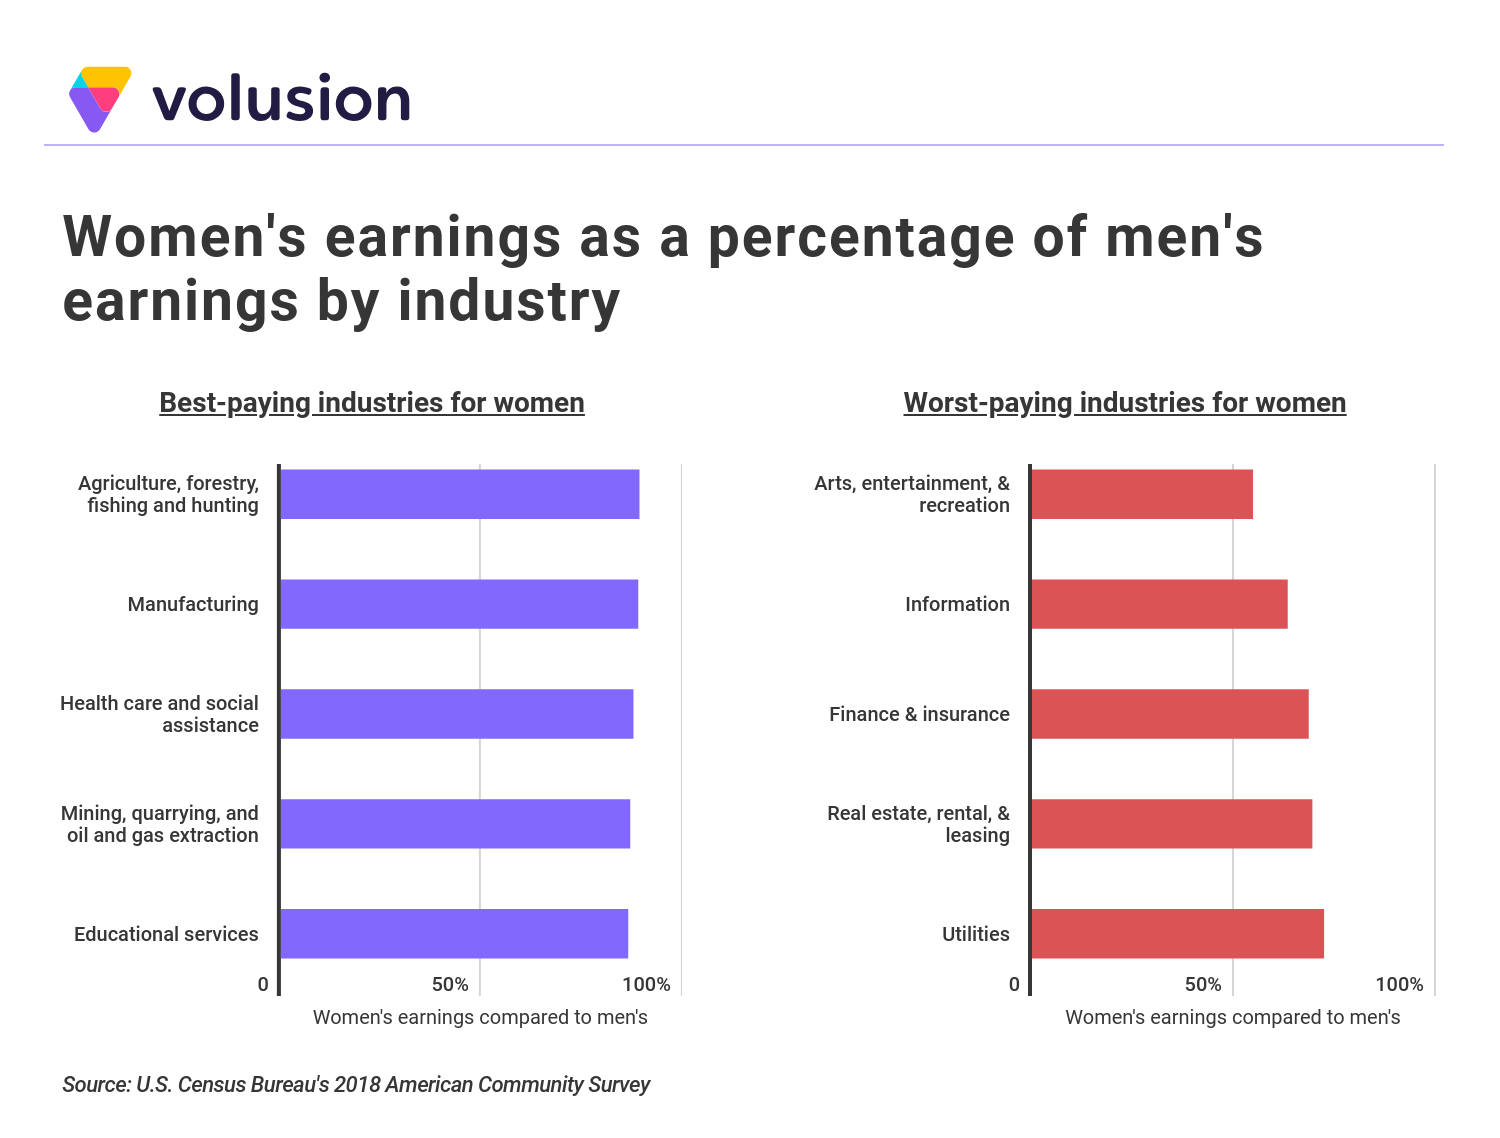 Comparative Bar Graph - Women's Earnings as a Percentage of Men's Earnings by Industry